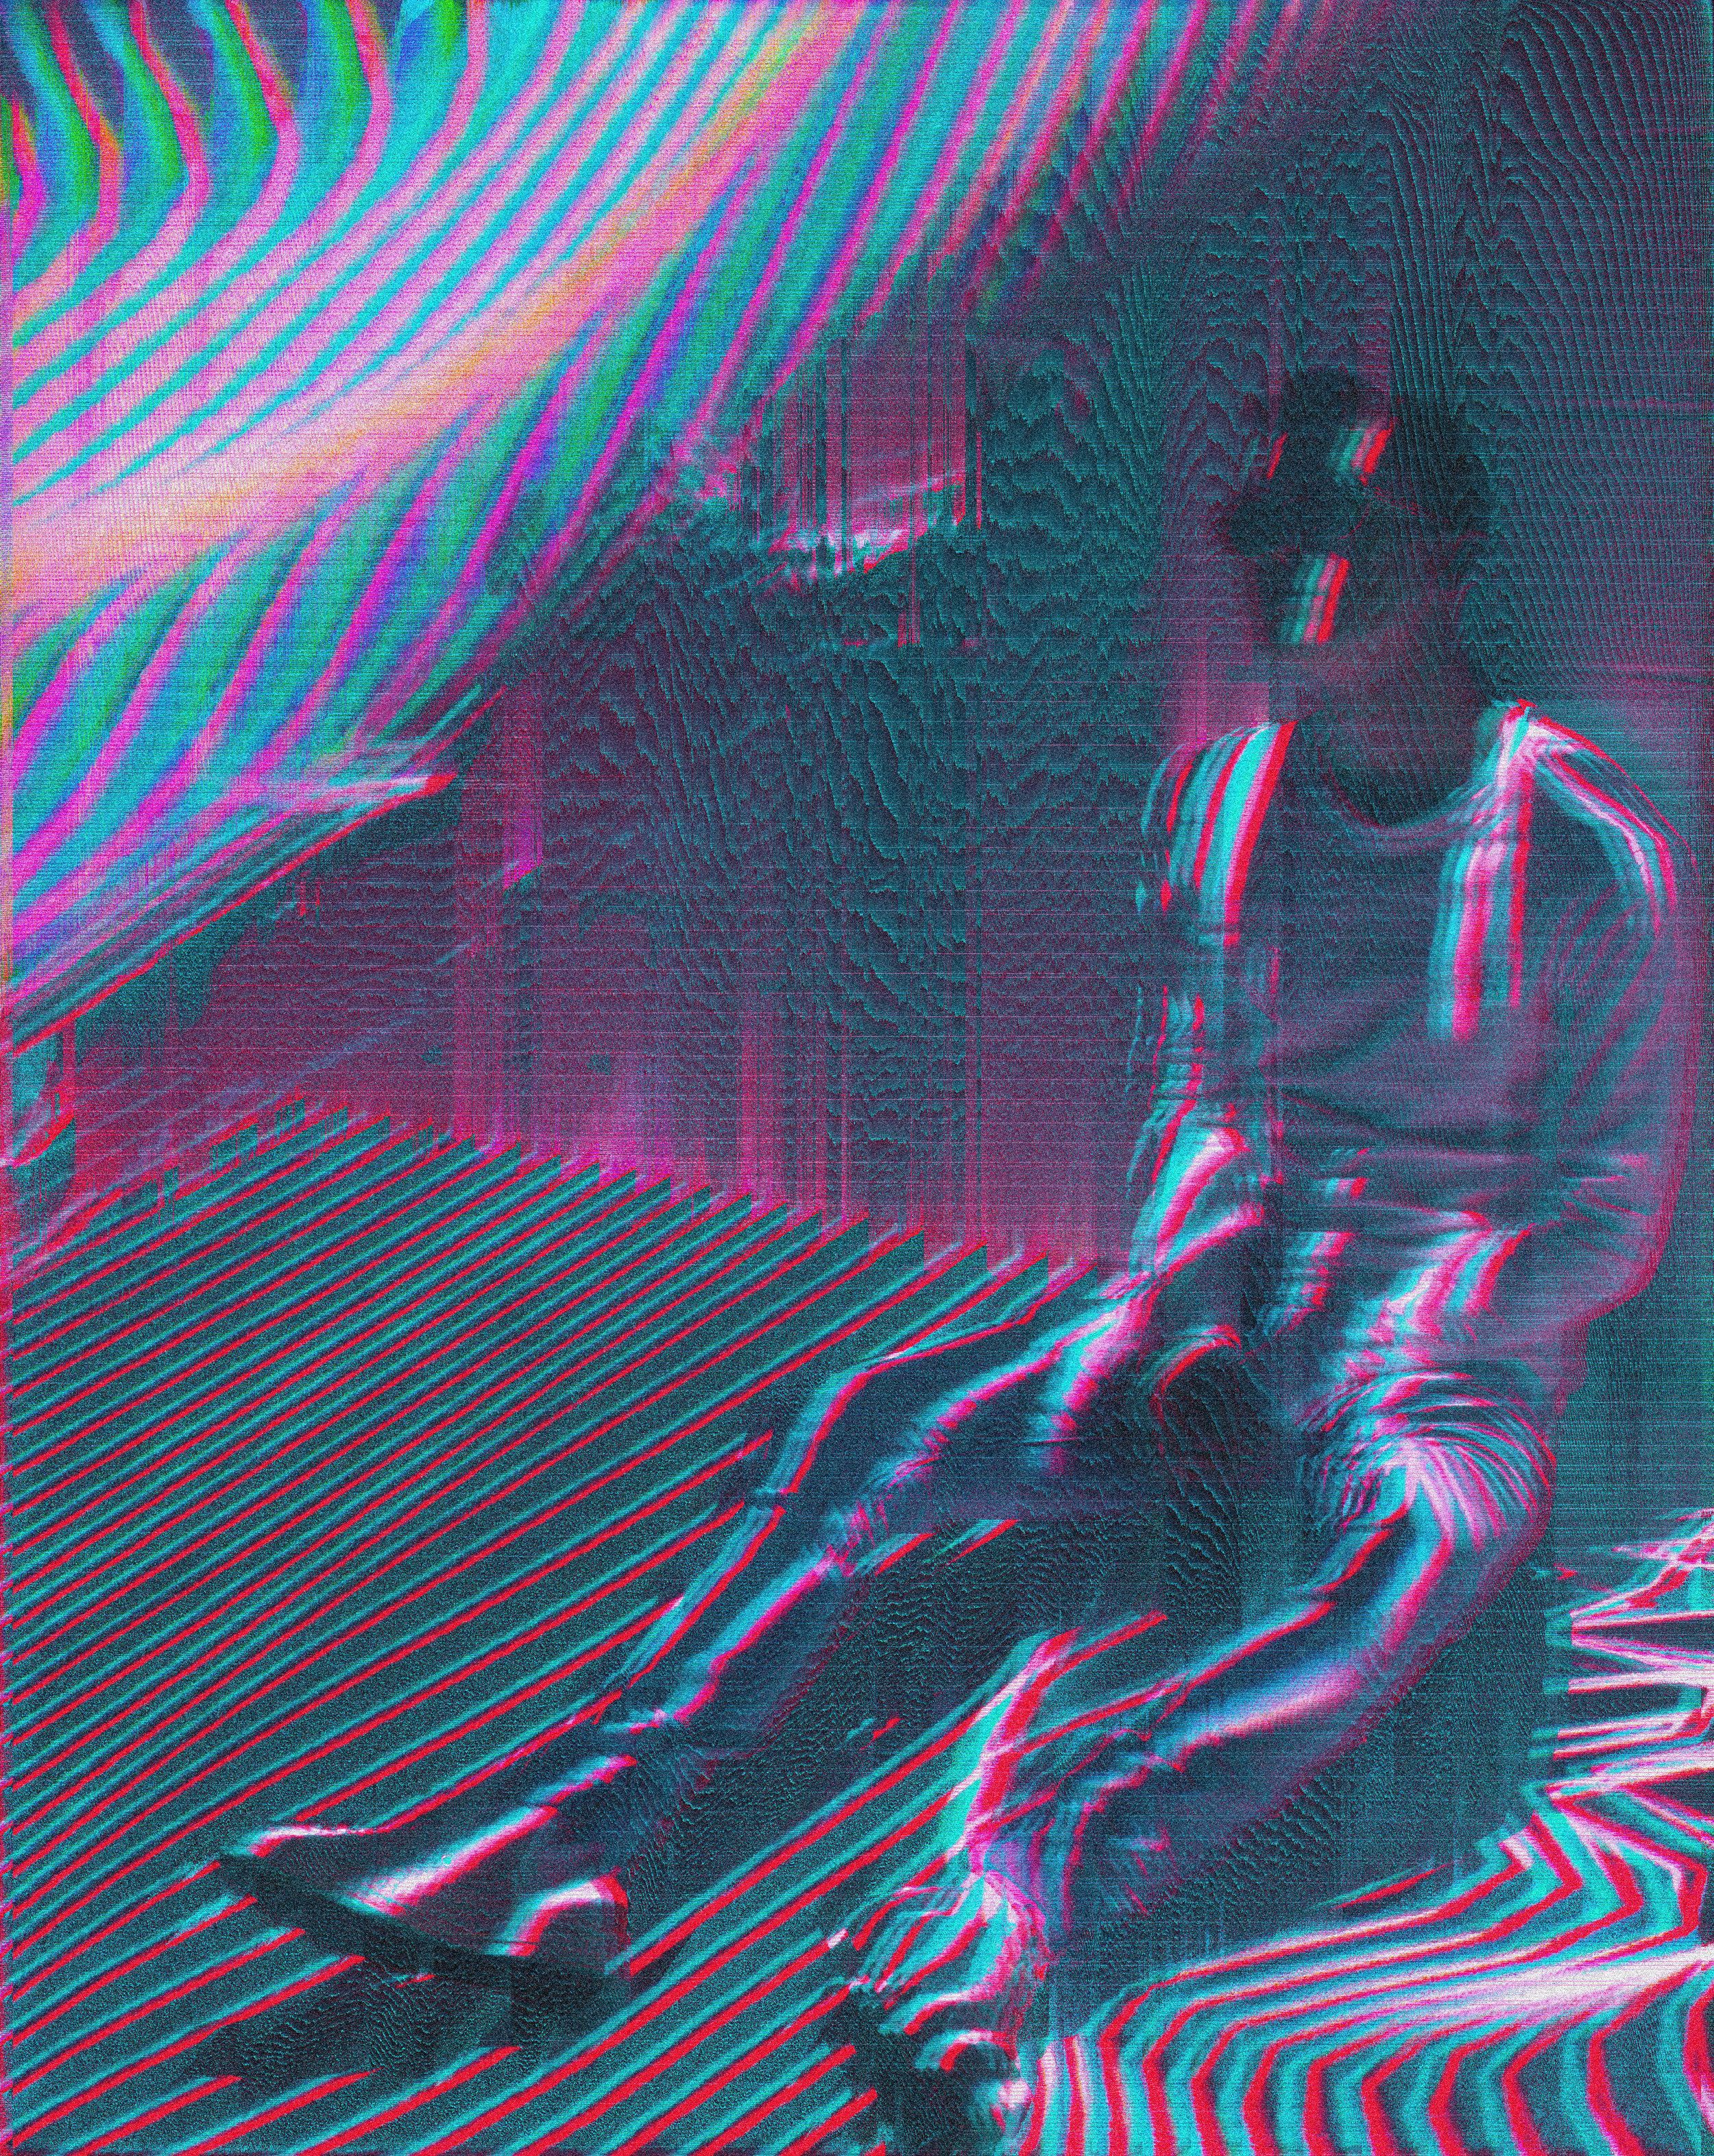 anaglych_2.1_16